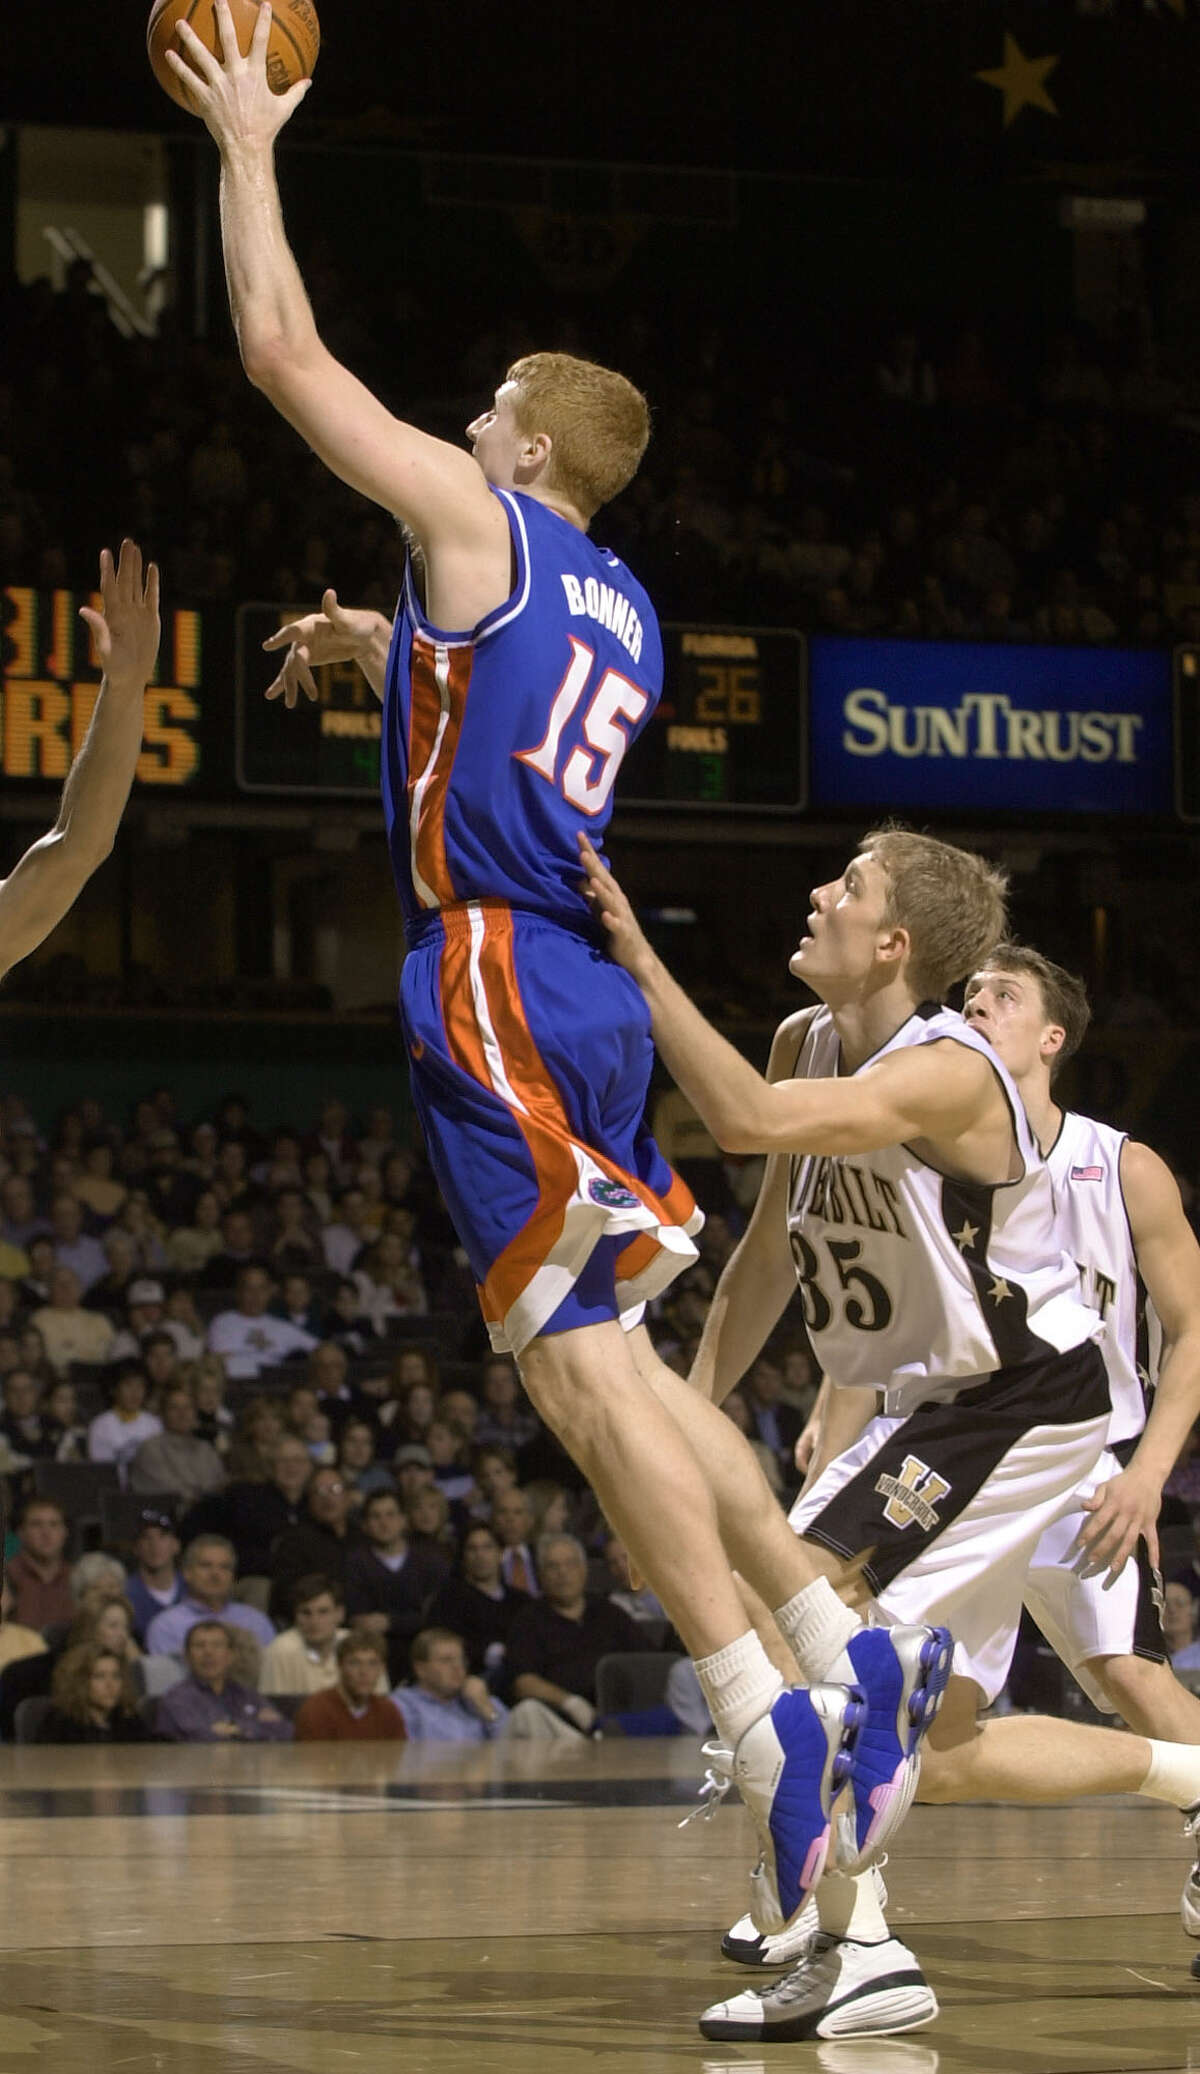 Matt Bonner, Florida Mar. 18, 2001: No. 11 Temple defeats No. 3 Florida 75-54 in Round of 32 Bonner didn't have a lot of tournament success in his four years with the Gators. Florida made a run to the National Championship game his freshman season, but he played sparingly.  His